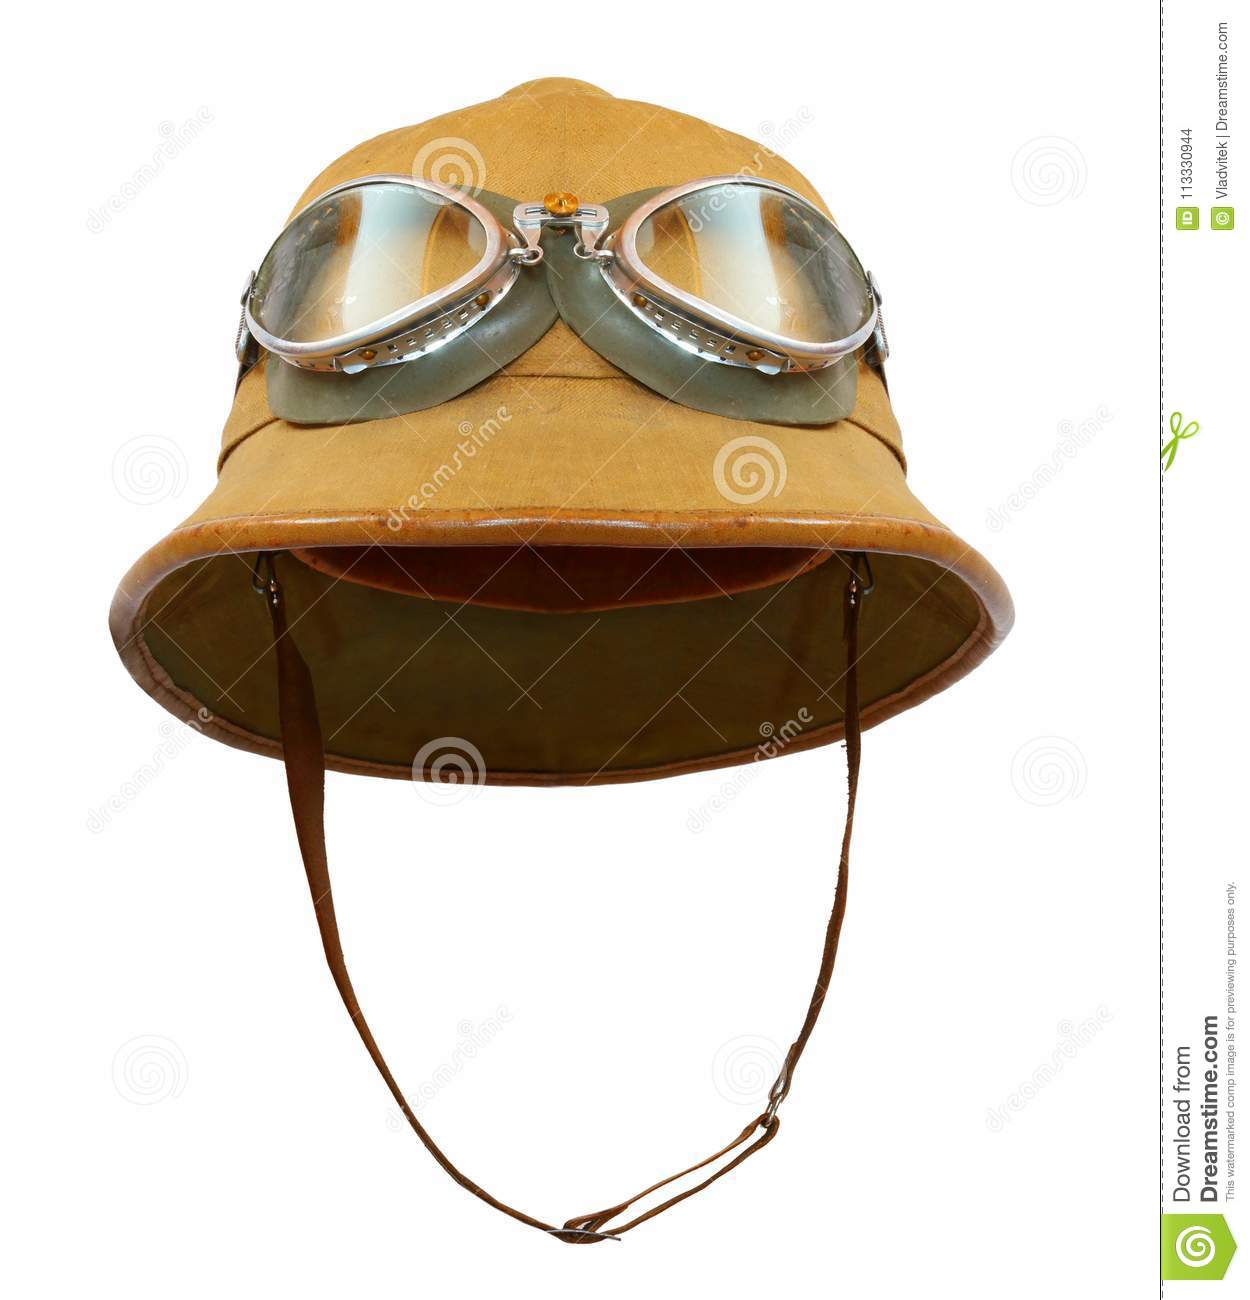 5879c414b9f5a Tropical Pith Helmet With Goggles. Stock Photo - Image of helmet ...